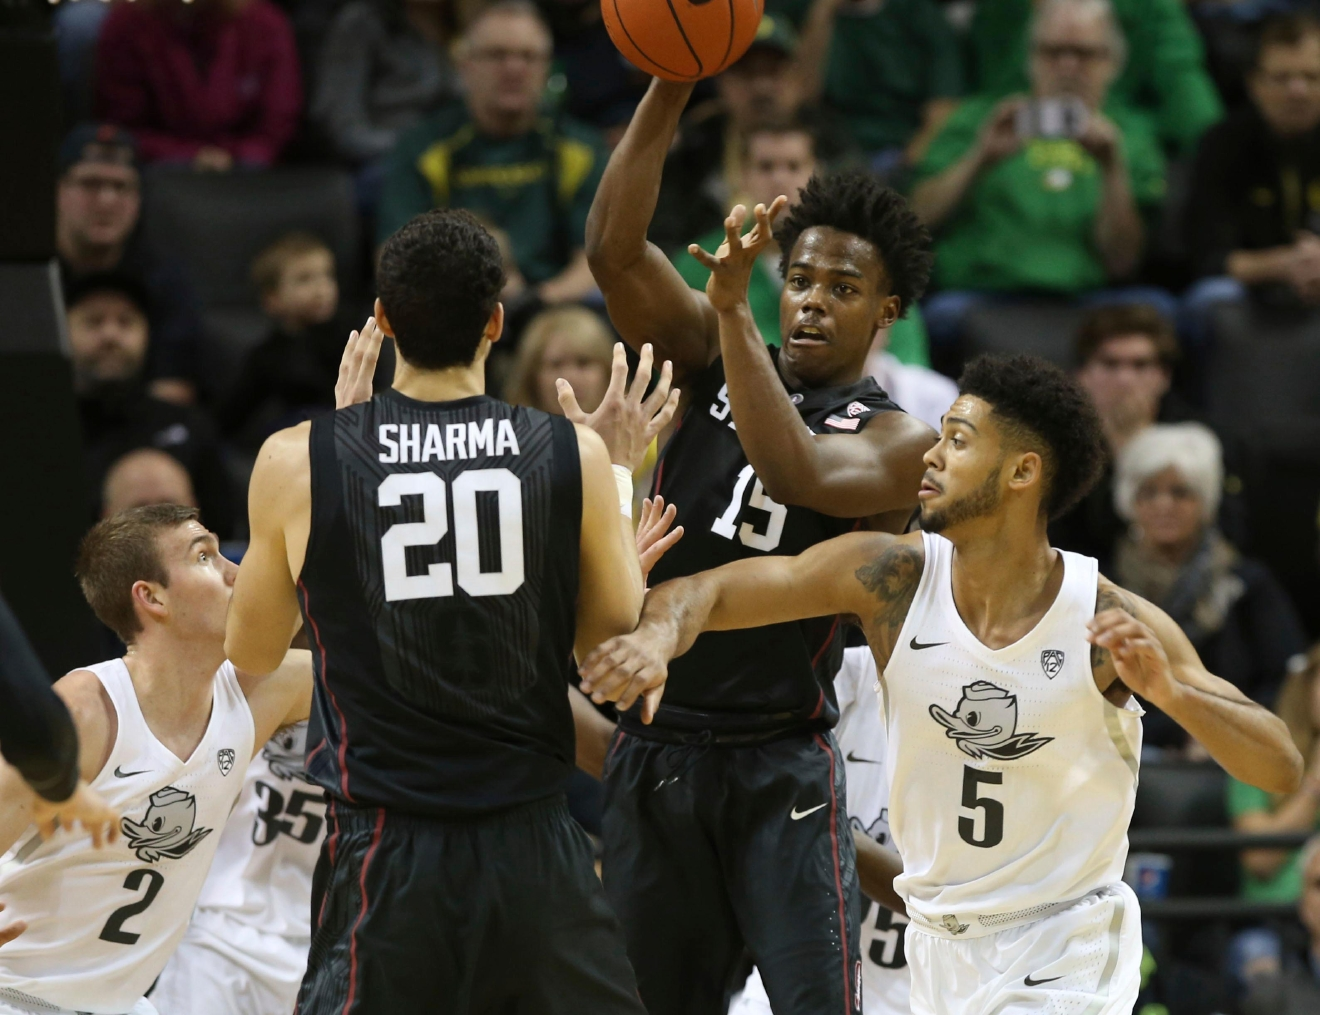 Stanford's Marcus Allen, center, passes to teammate Josh Sharma, center left, under pressure from Oregon's Casey Benson, left, and Tyler Dorsey, right, during the first half an NCAA college basketball game Saturday, Jan. 21, 2017, in Eugene, Ore. (AP Photo/Chris Pietsch)